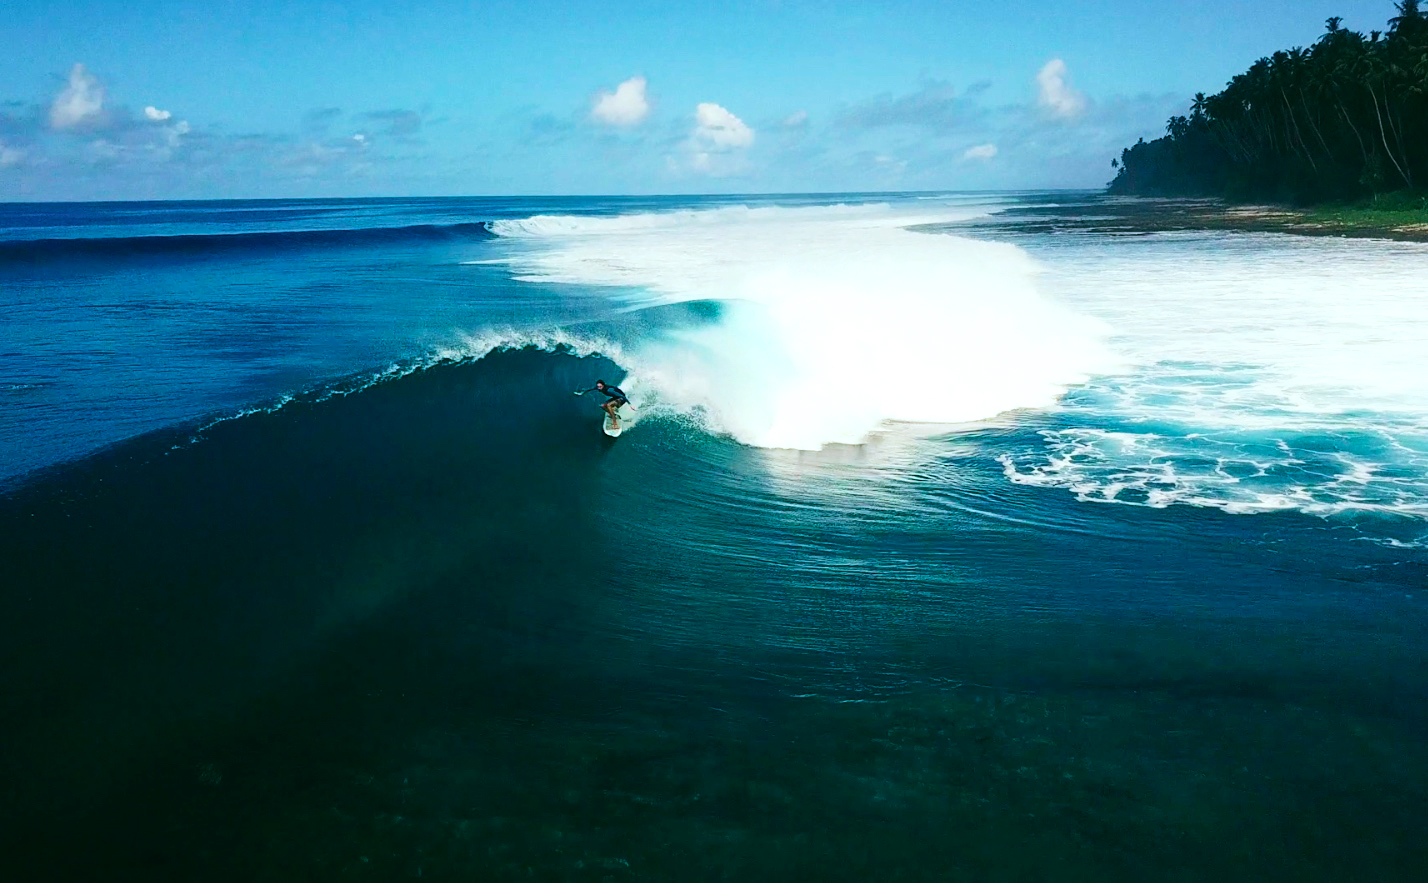 Surf Vacation - Simeulue Island, North Sumatra